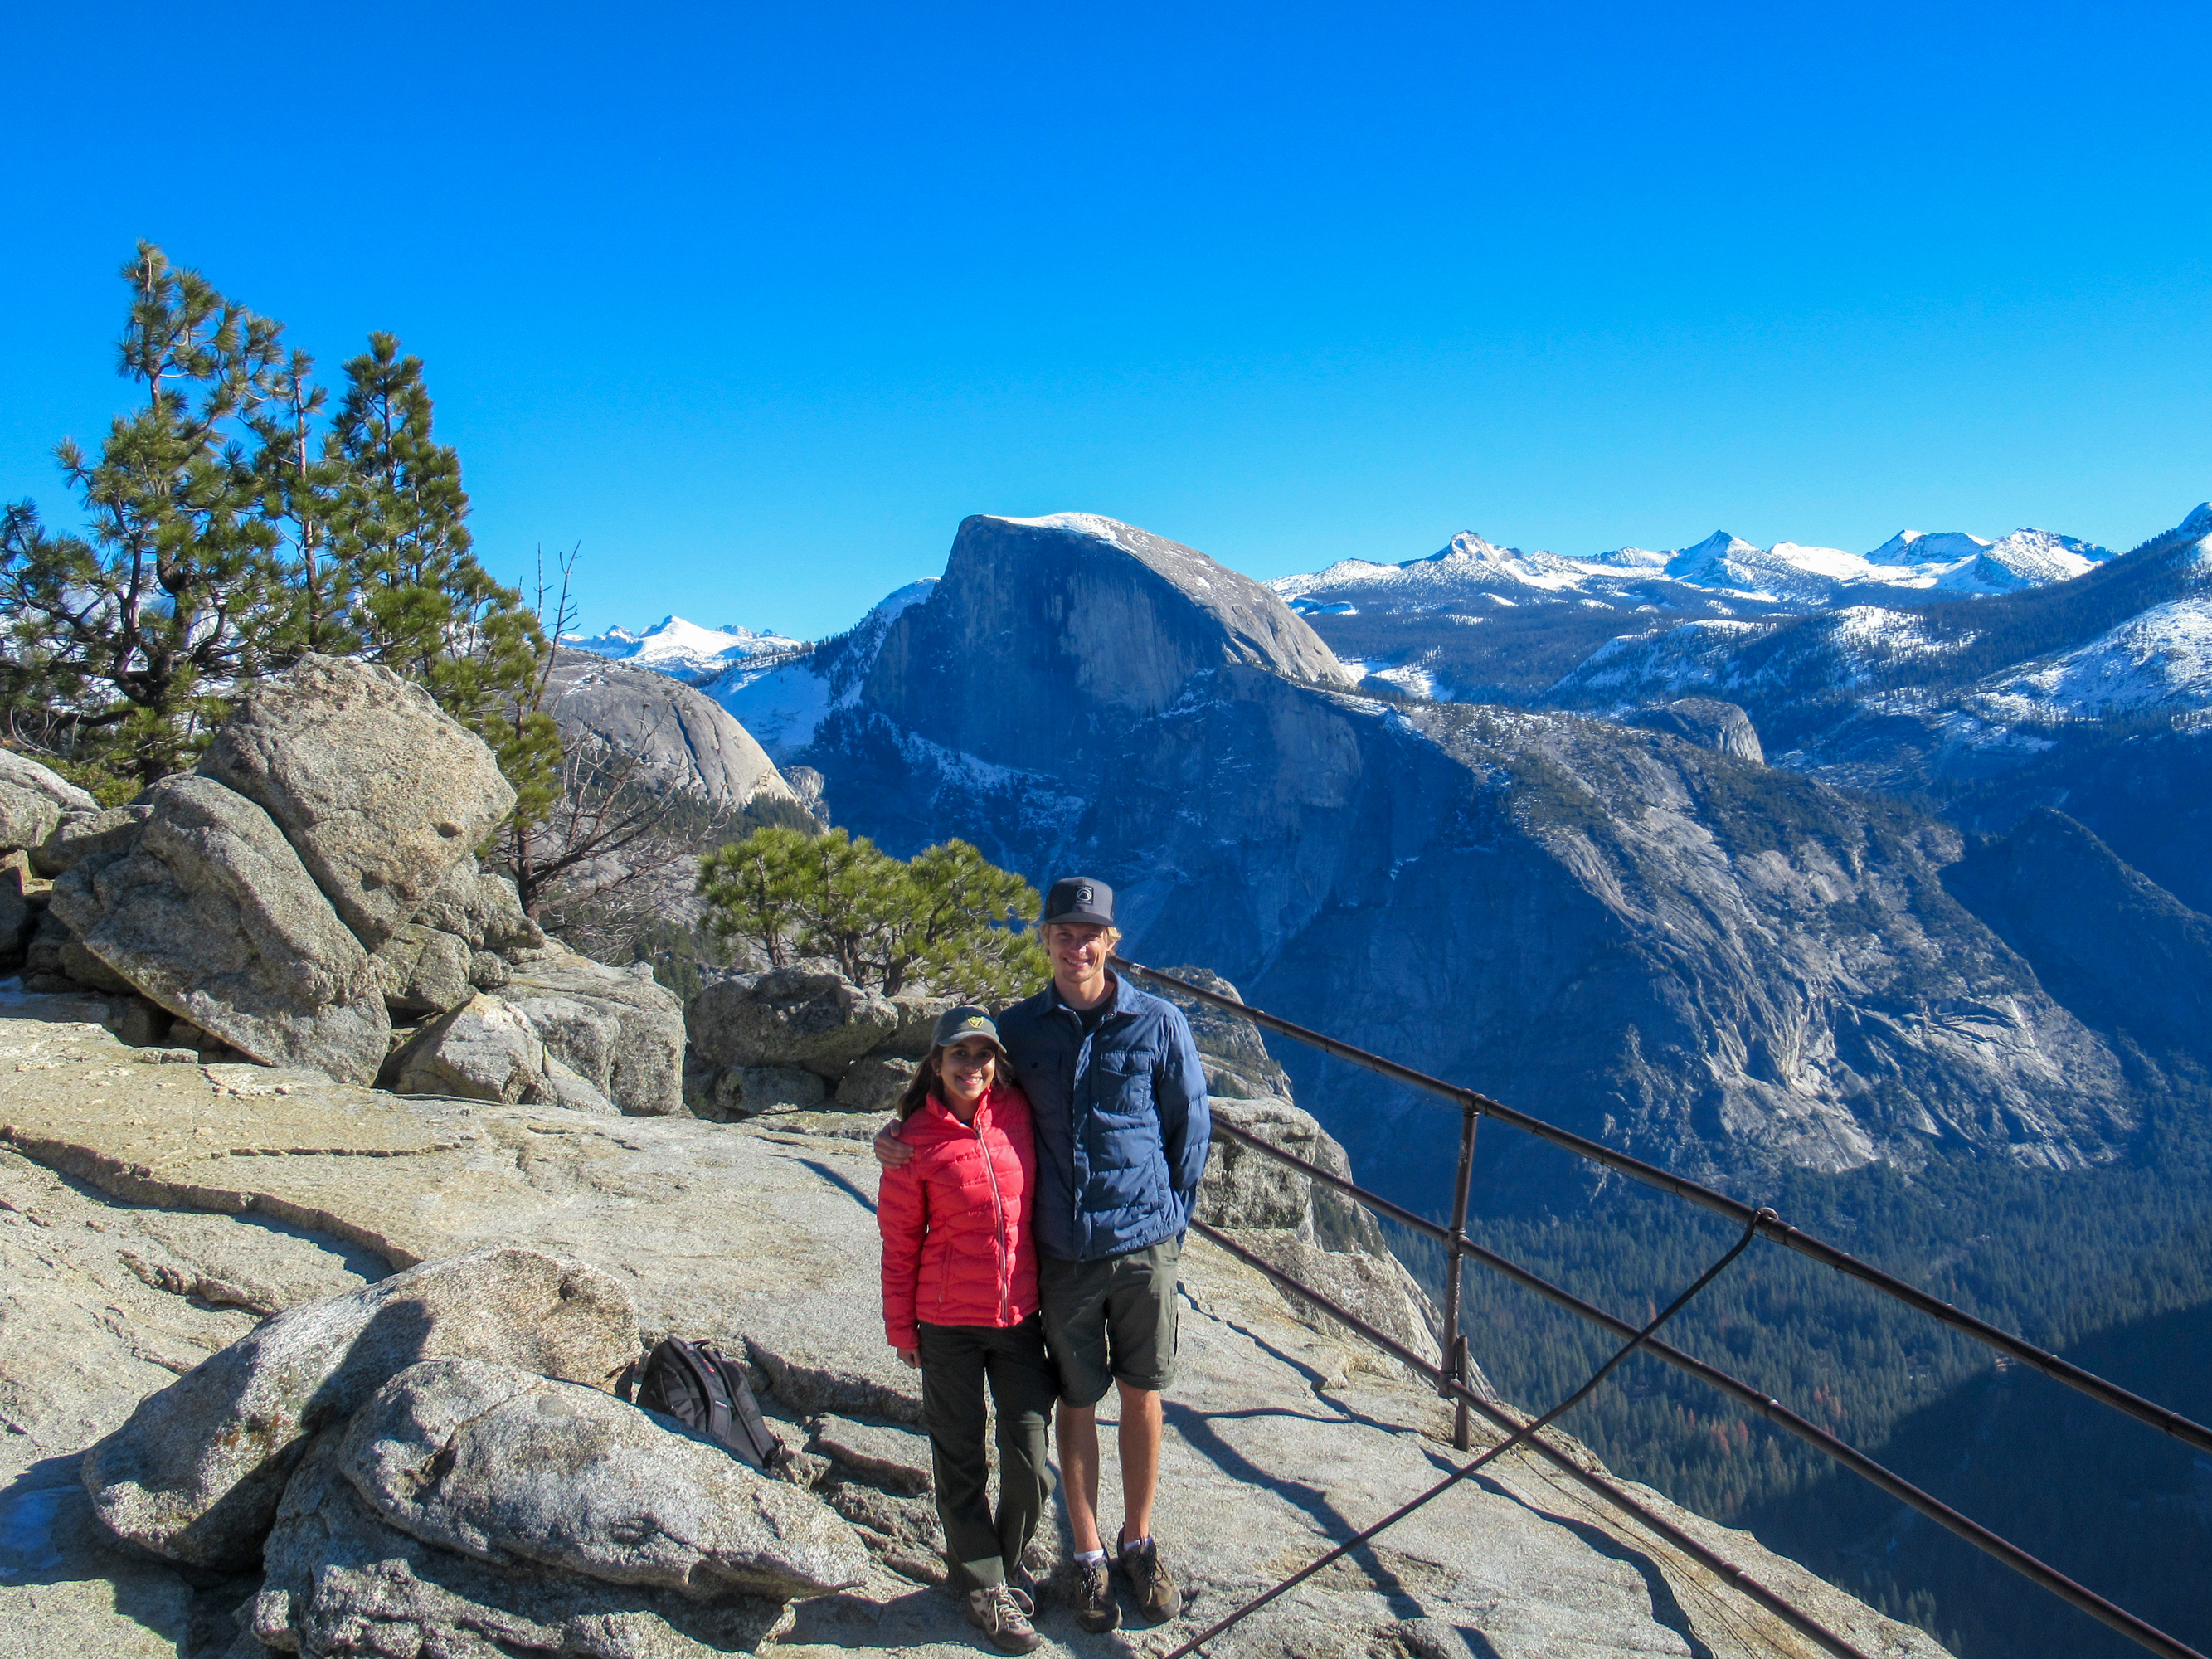 A couple takes a photo with Half Dome in the background.